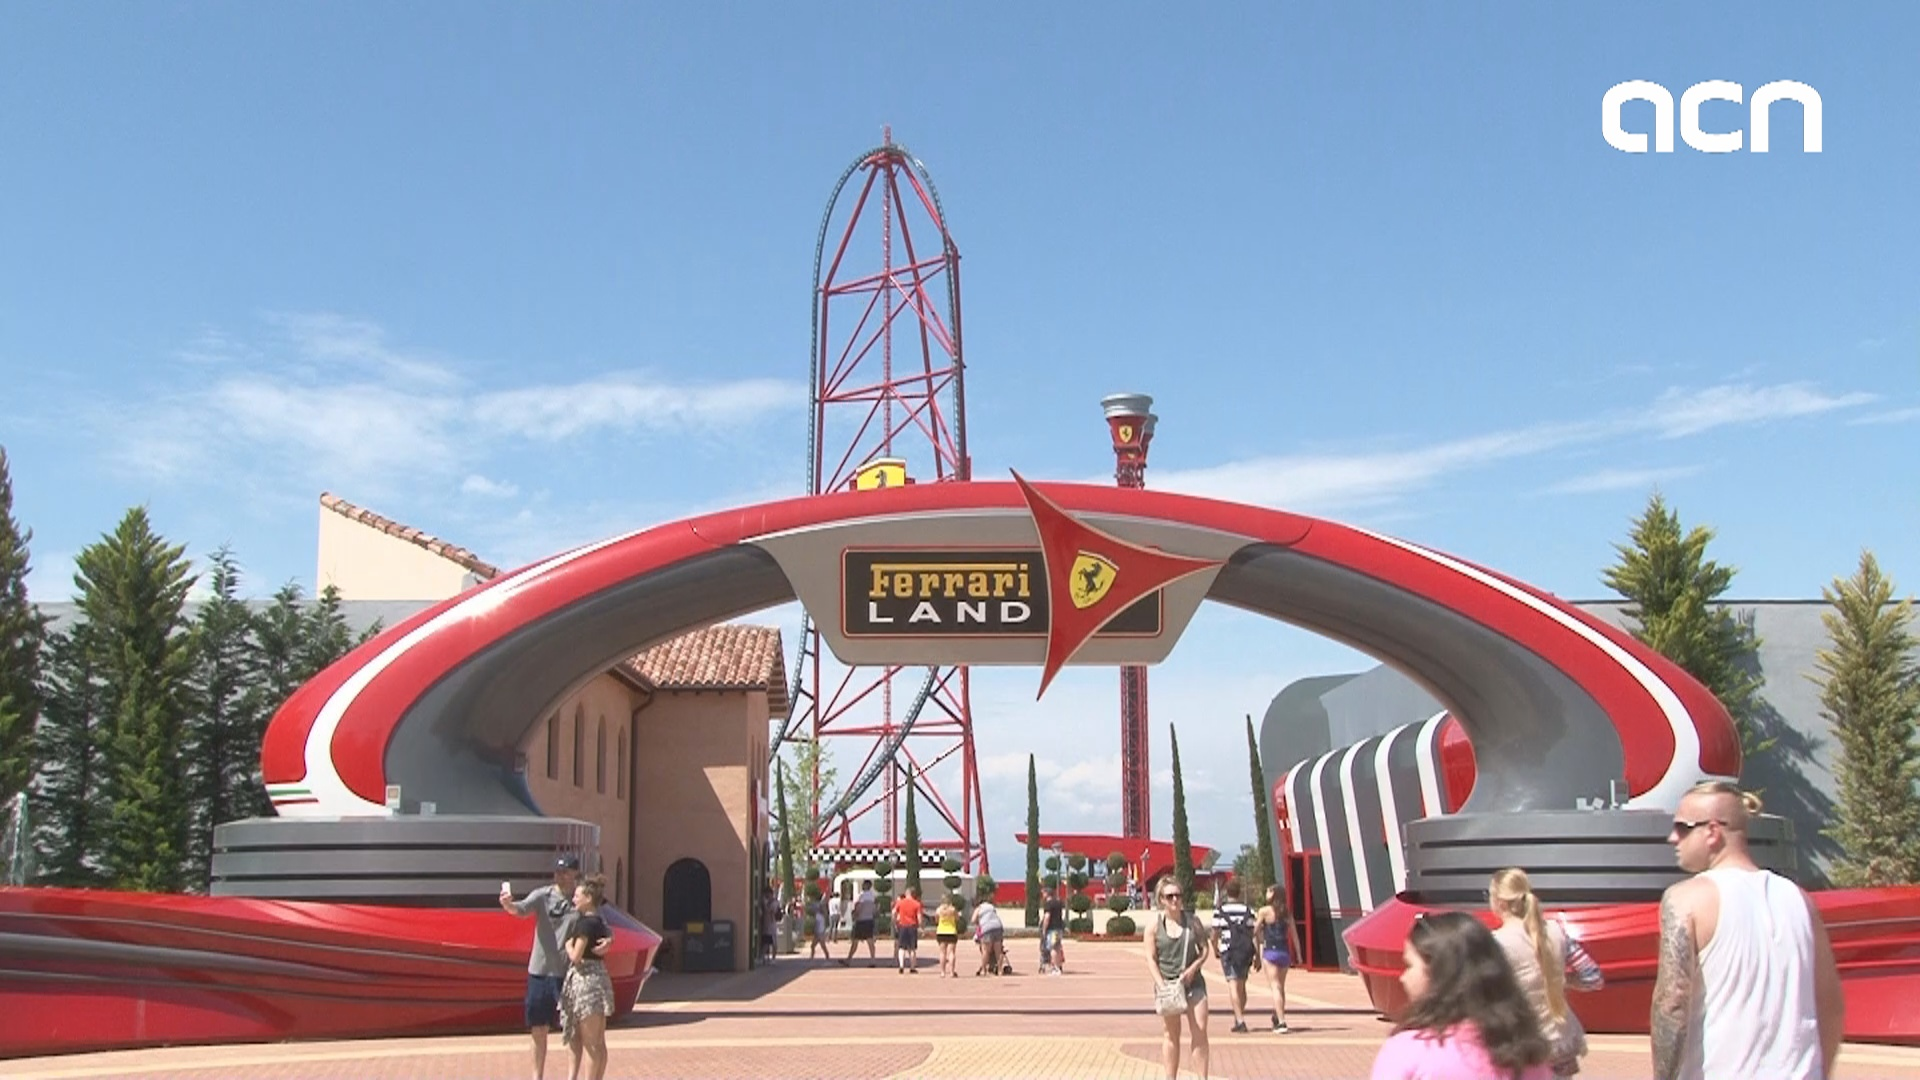 PortAventura theme park forecasts more than record 5 million record visitors this season